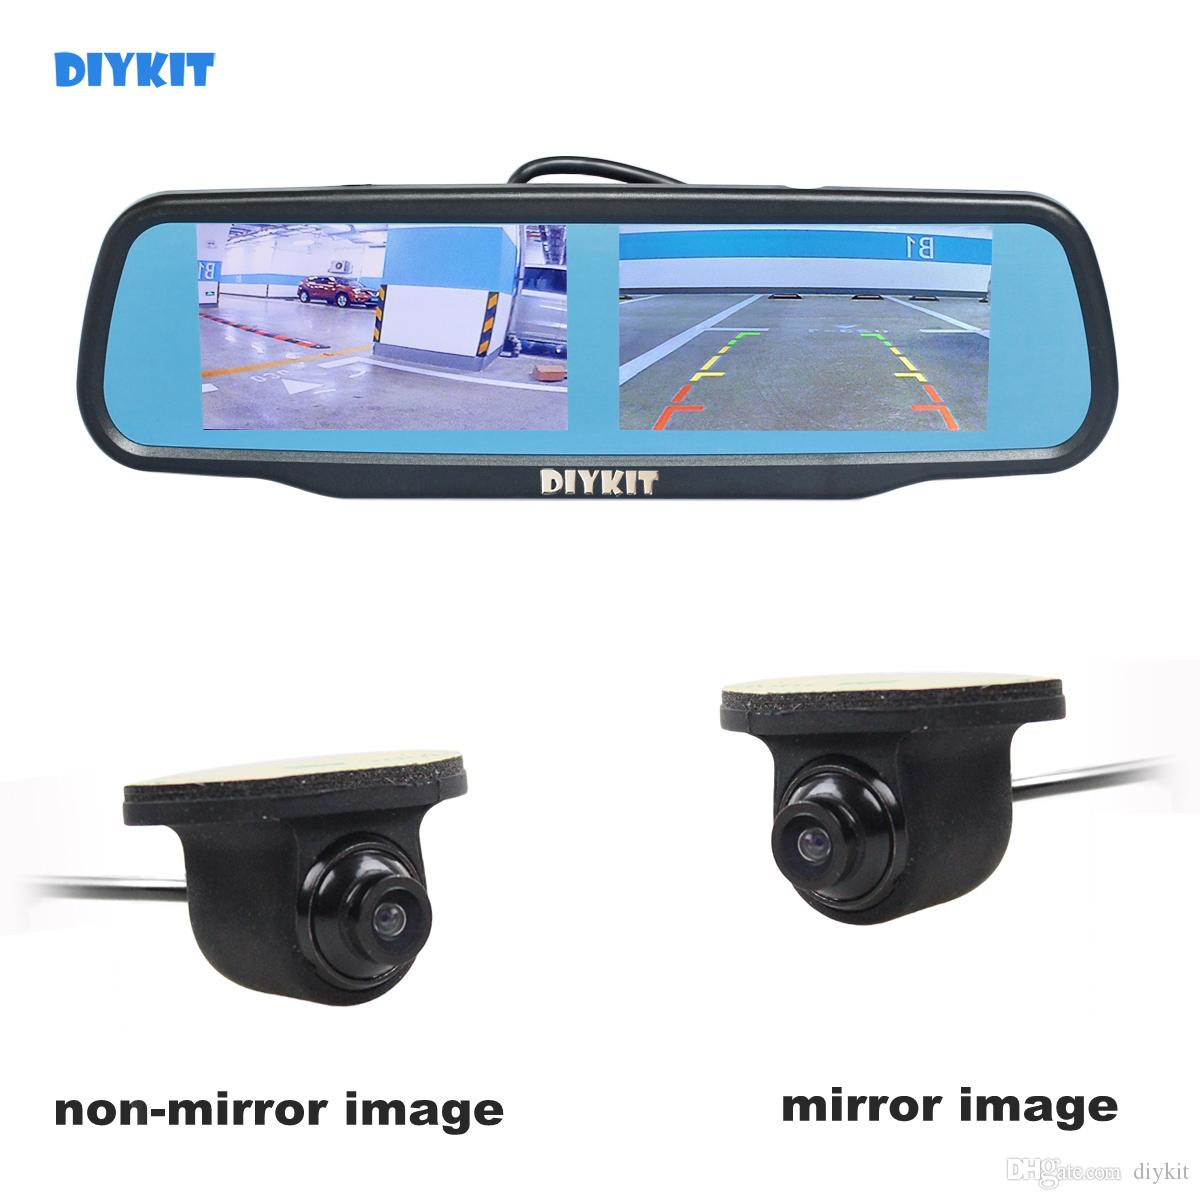 DIYKIT 4.3inch Rearview Car Mirror Monitor + CCD Car Rear View Camera for Rear/ Front / Side View Camera